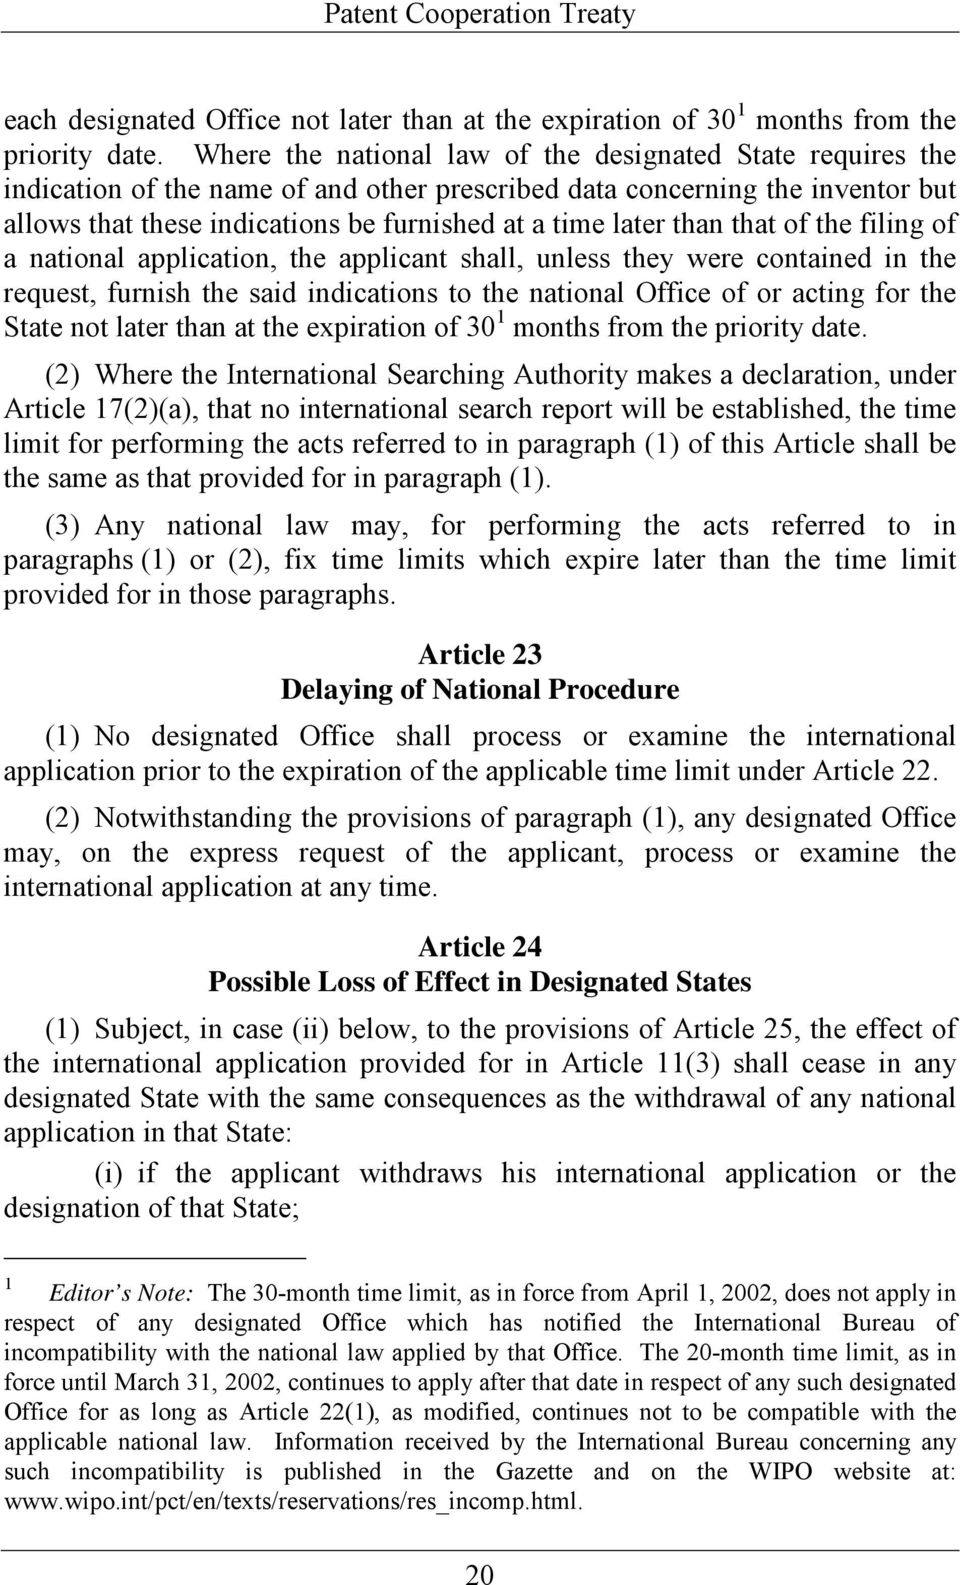 than that of the filing of a national application, the applicant shall, unless they were contained in the request, furnish the said indications to the national Office of or acting for the State not